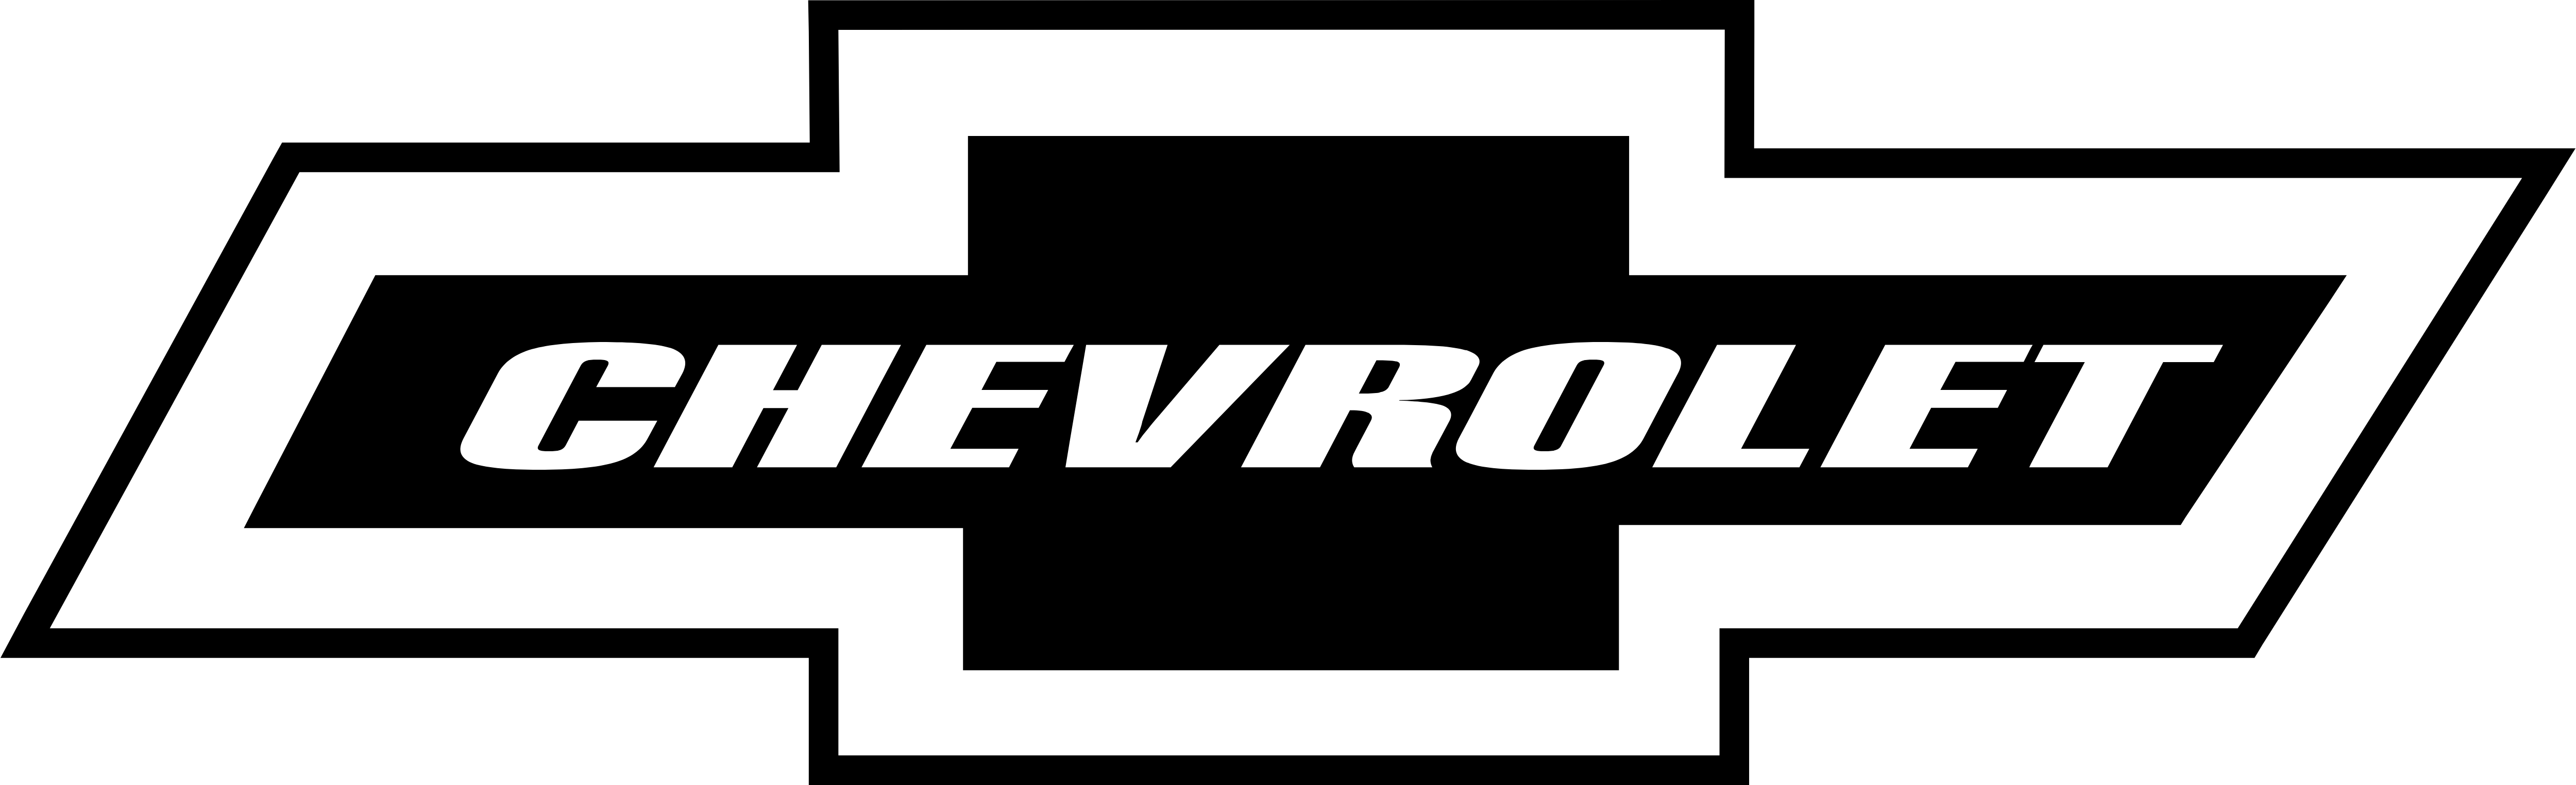 Chevrolet vector transparent background. Logos download